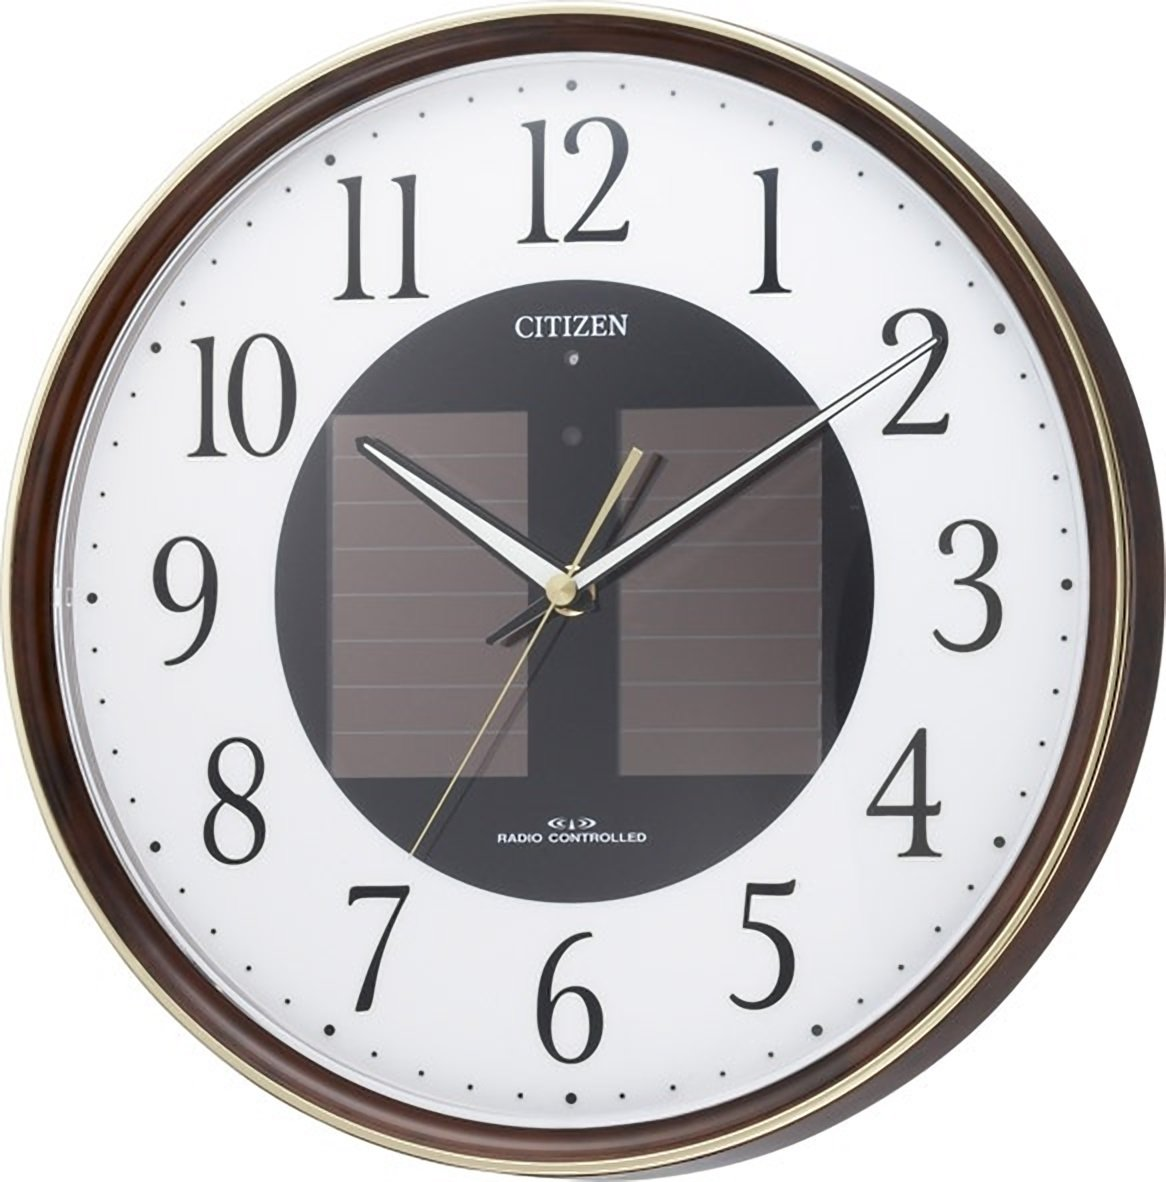 Amazon citizen citizen wall clock eco life m807 radio amazon citizen citizen wall clock eco life m807 radio clock solar power eco mark 4my807 023 home kitchen amipublicfo Image collections